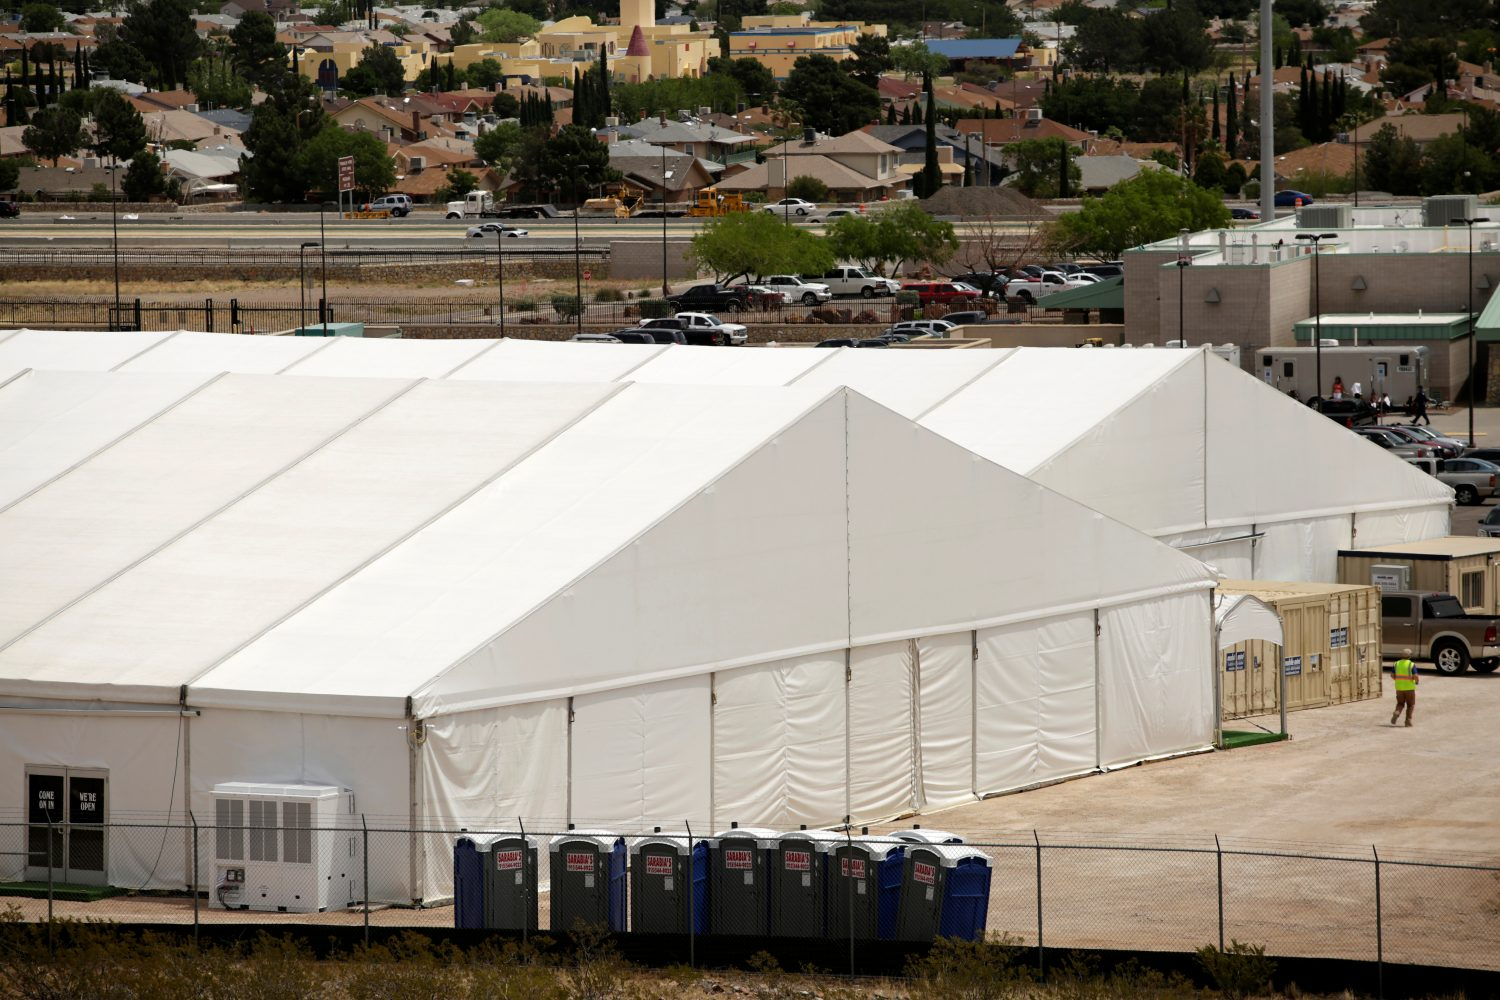 FILE PHOTO - A general view shows a temporary facility for processing migrants requesting asylum, at the U.S. Border Patrol headquarters in El Paso, Texas, U.S. April 29, 2019. REUTERS/Jose Luis Gonzalez